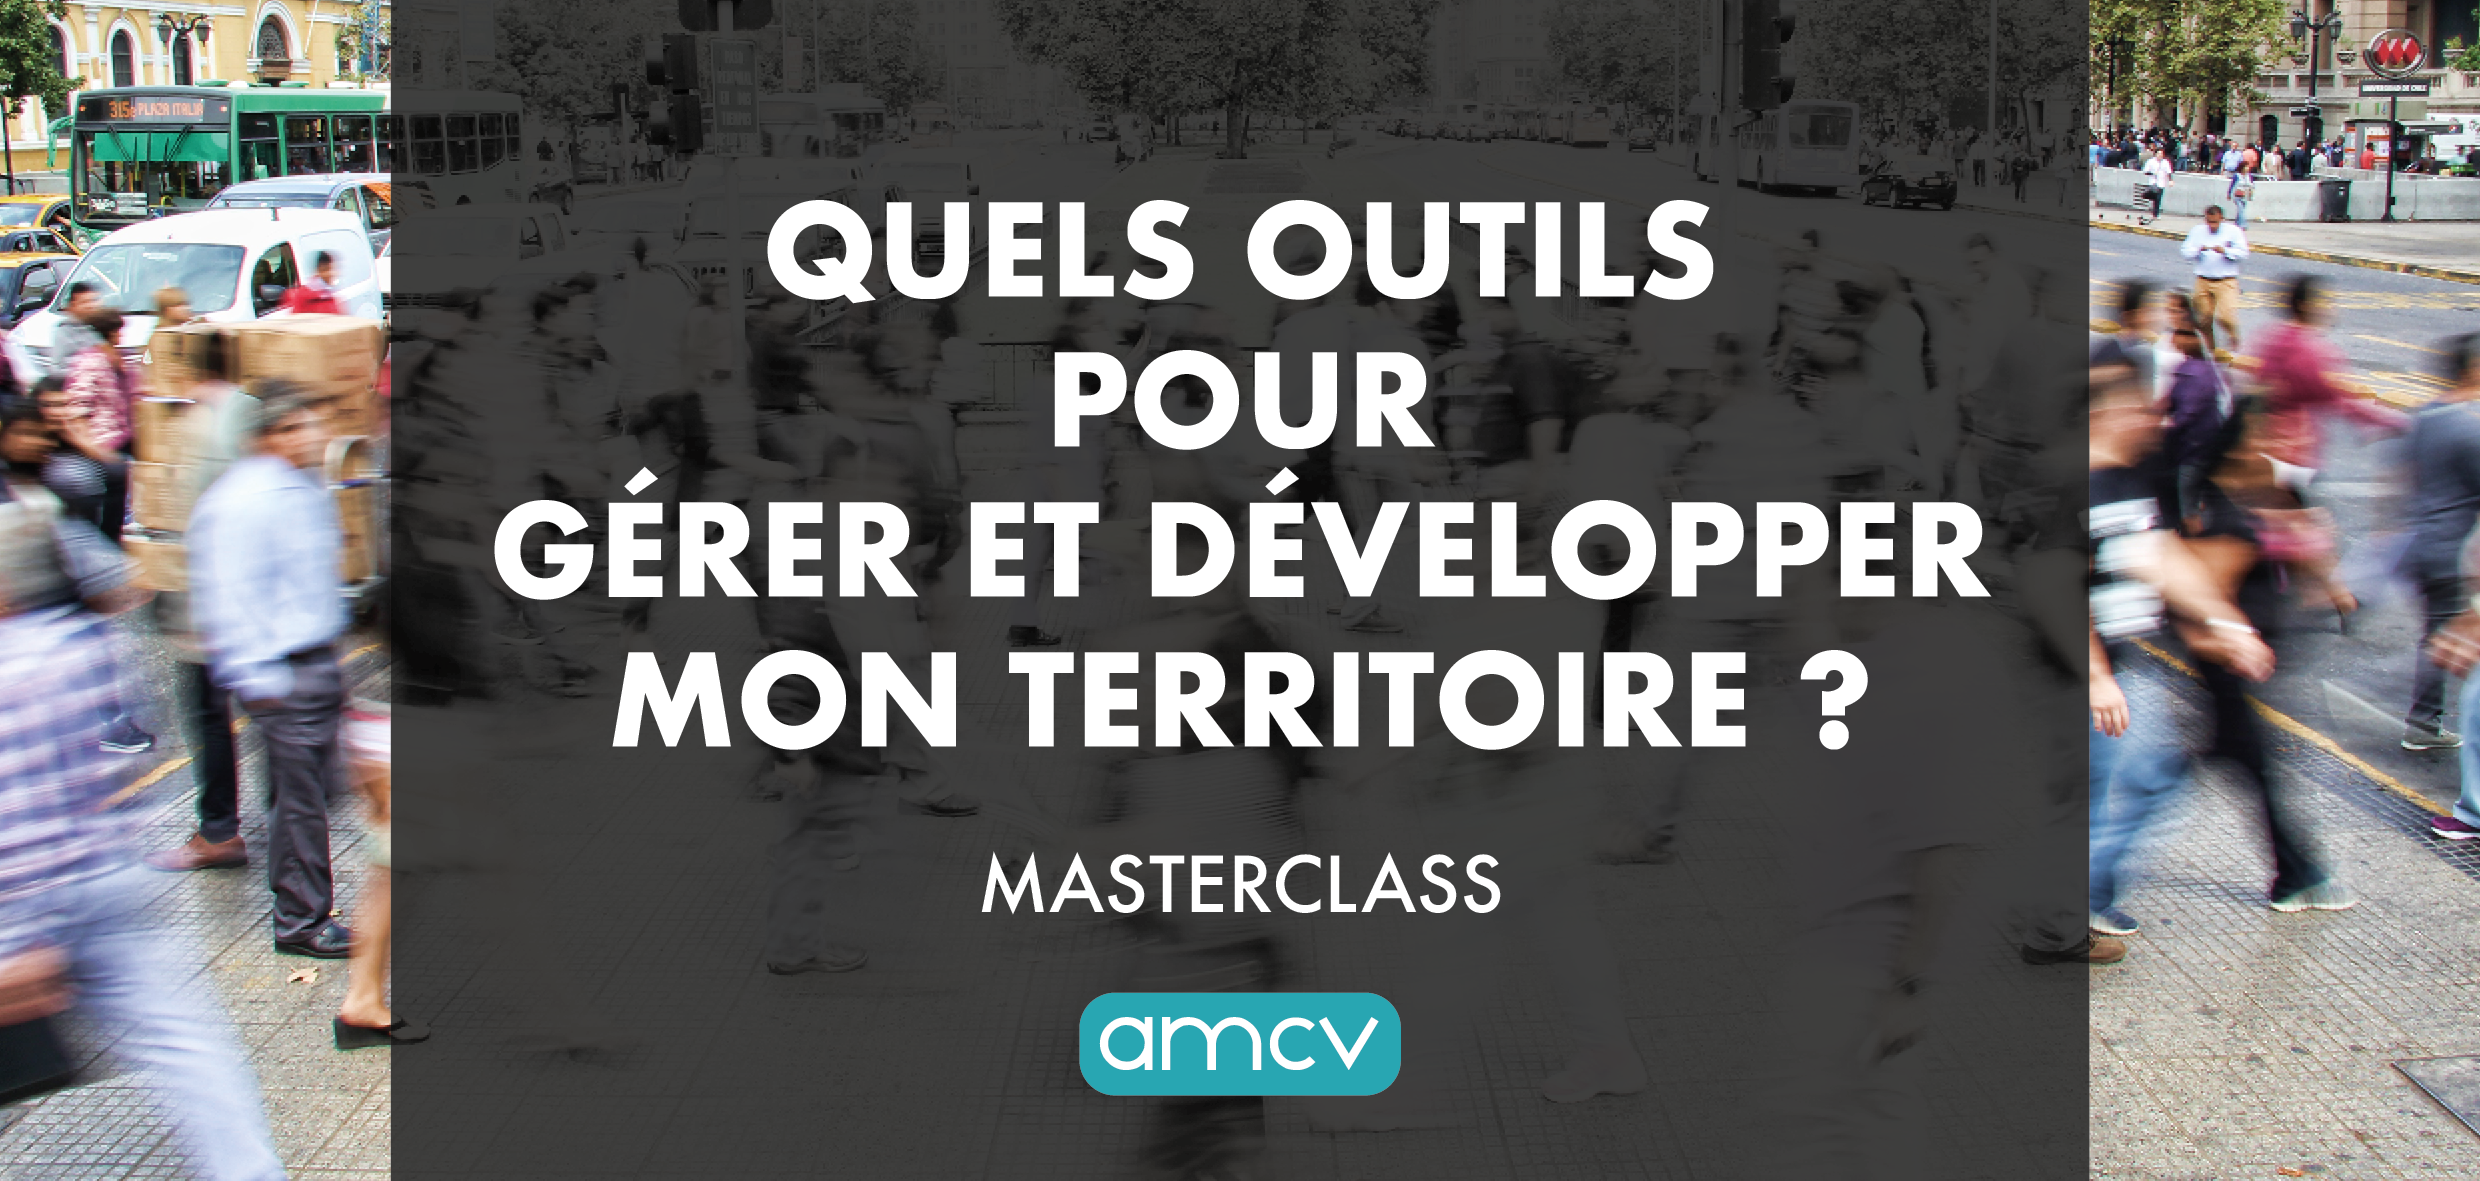 MARCH 24TH - MASTERCLASS IN FRENCH